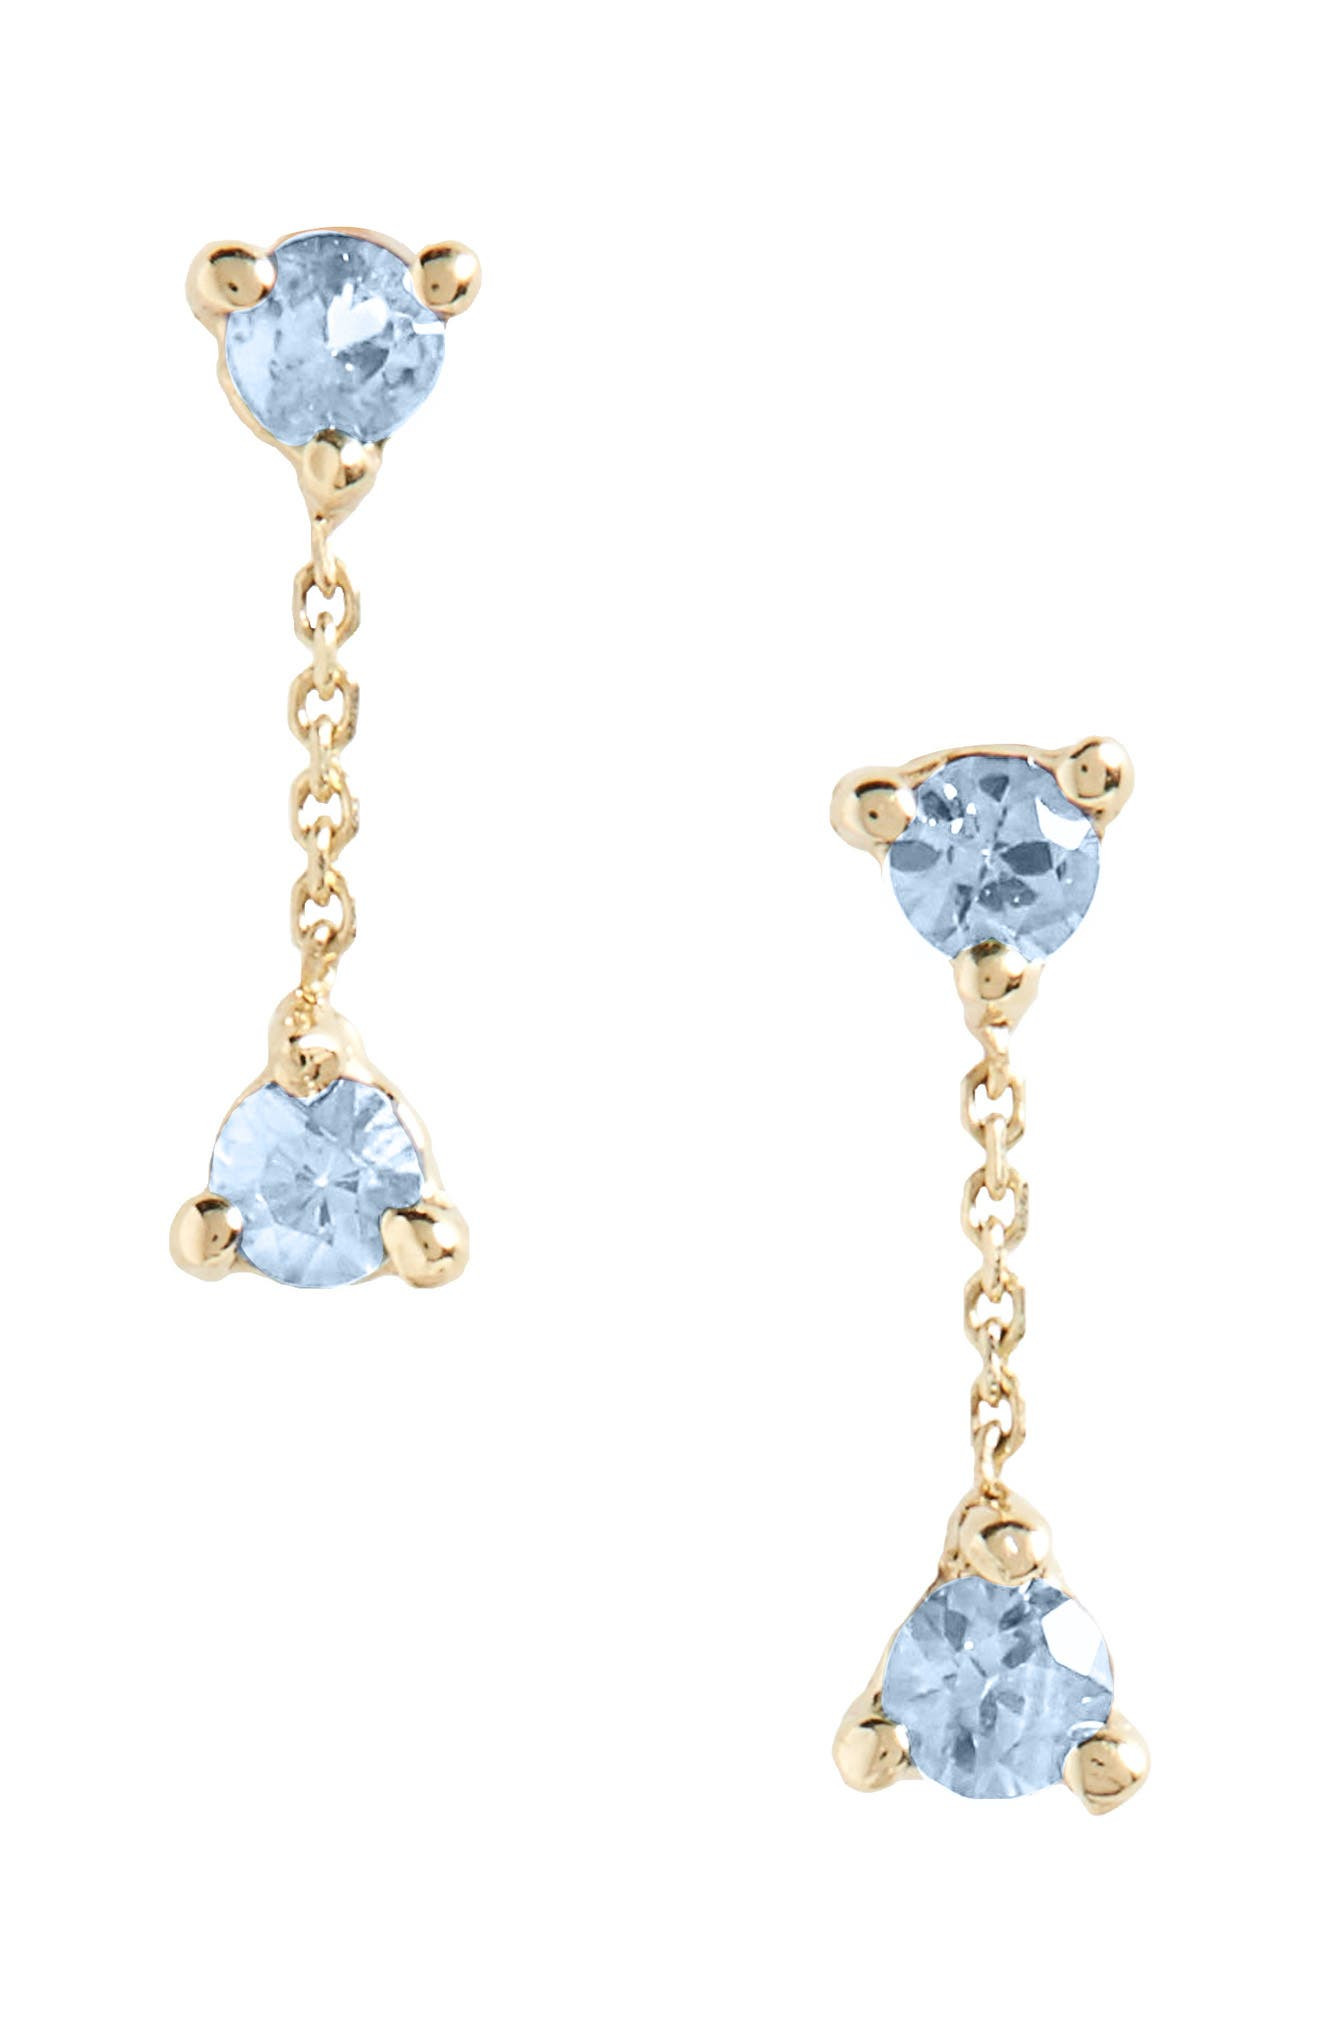 Counting Collection Small Two-Step Sapphire Drop Earrings,                         Main,                         color, Sapphire/ Gold